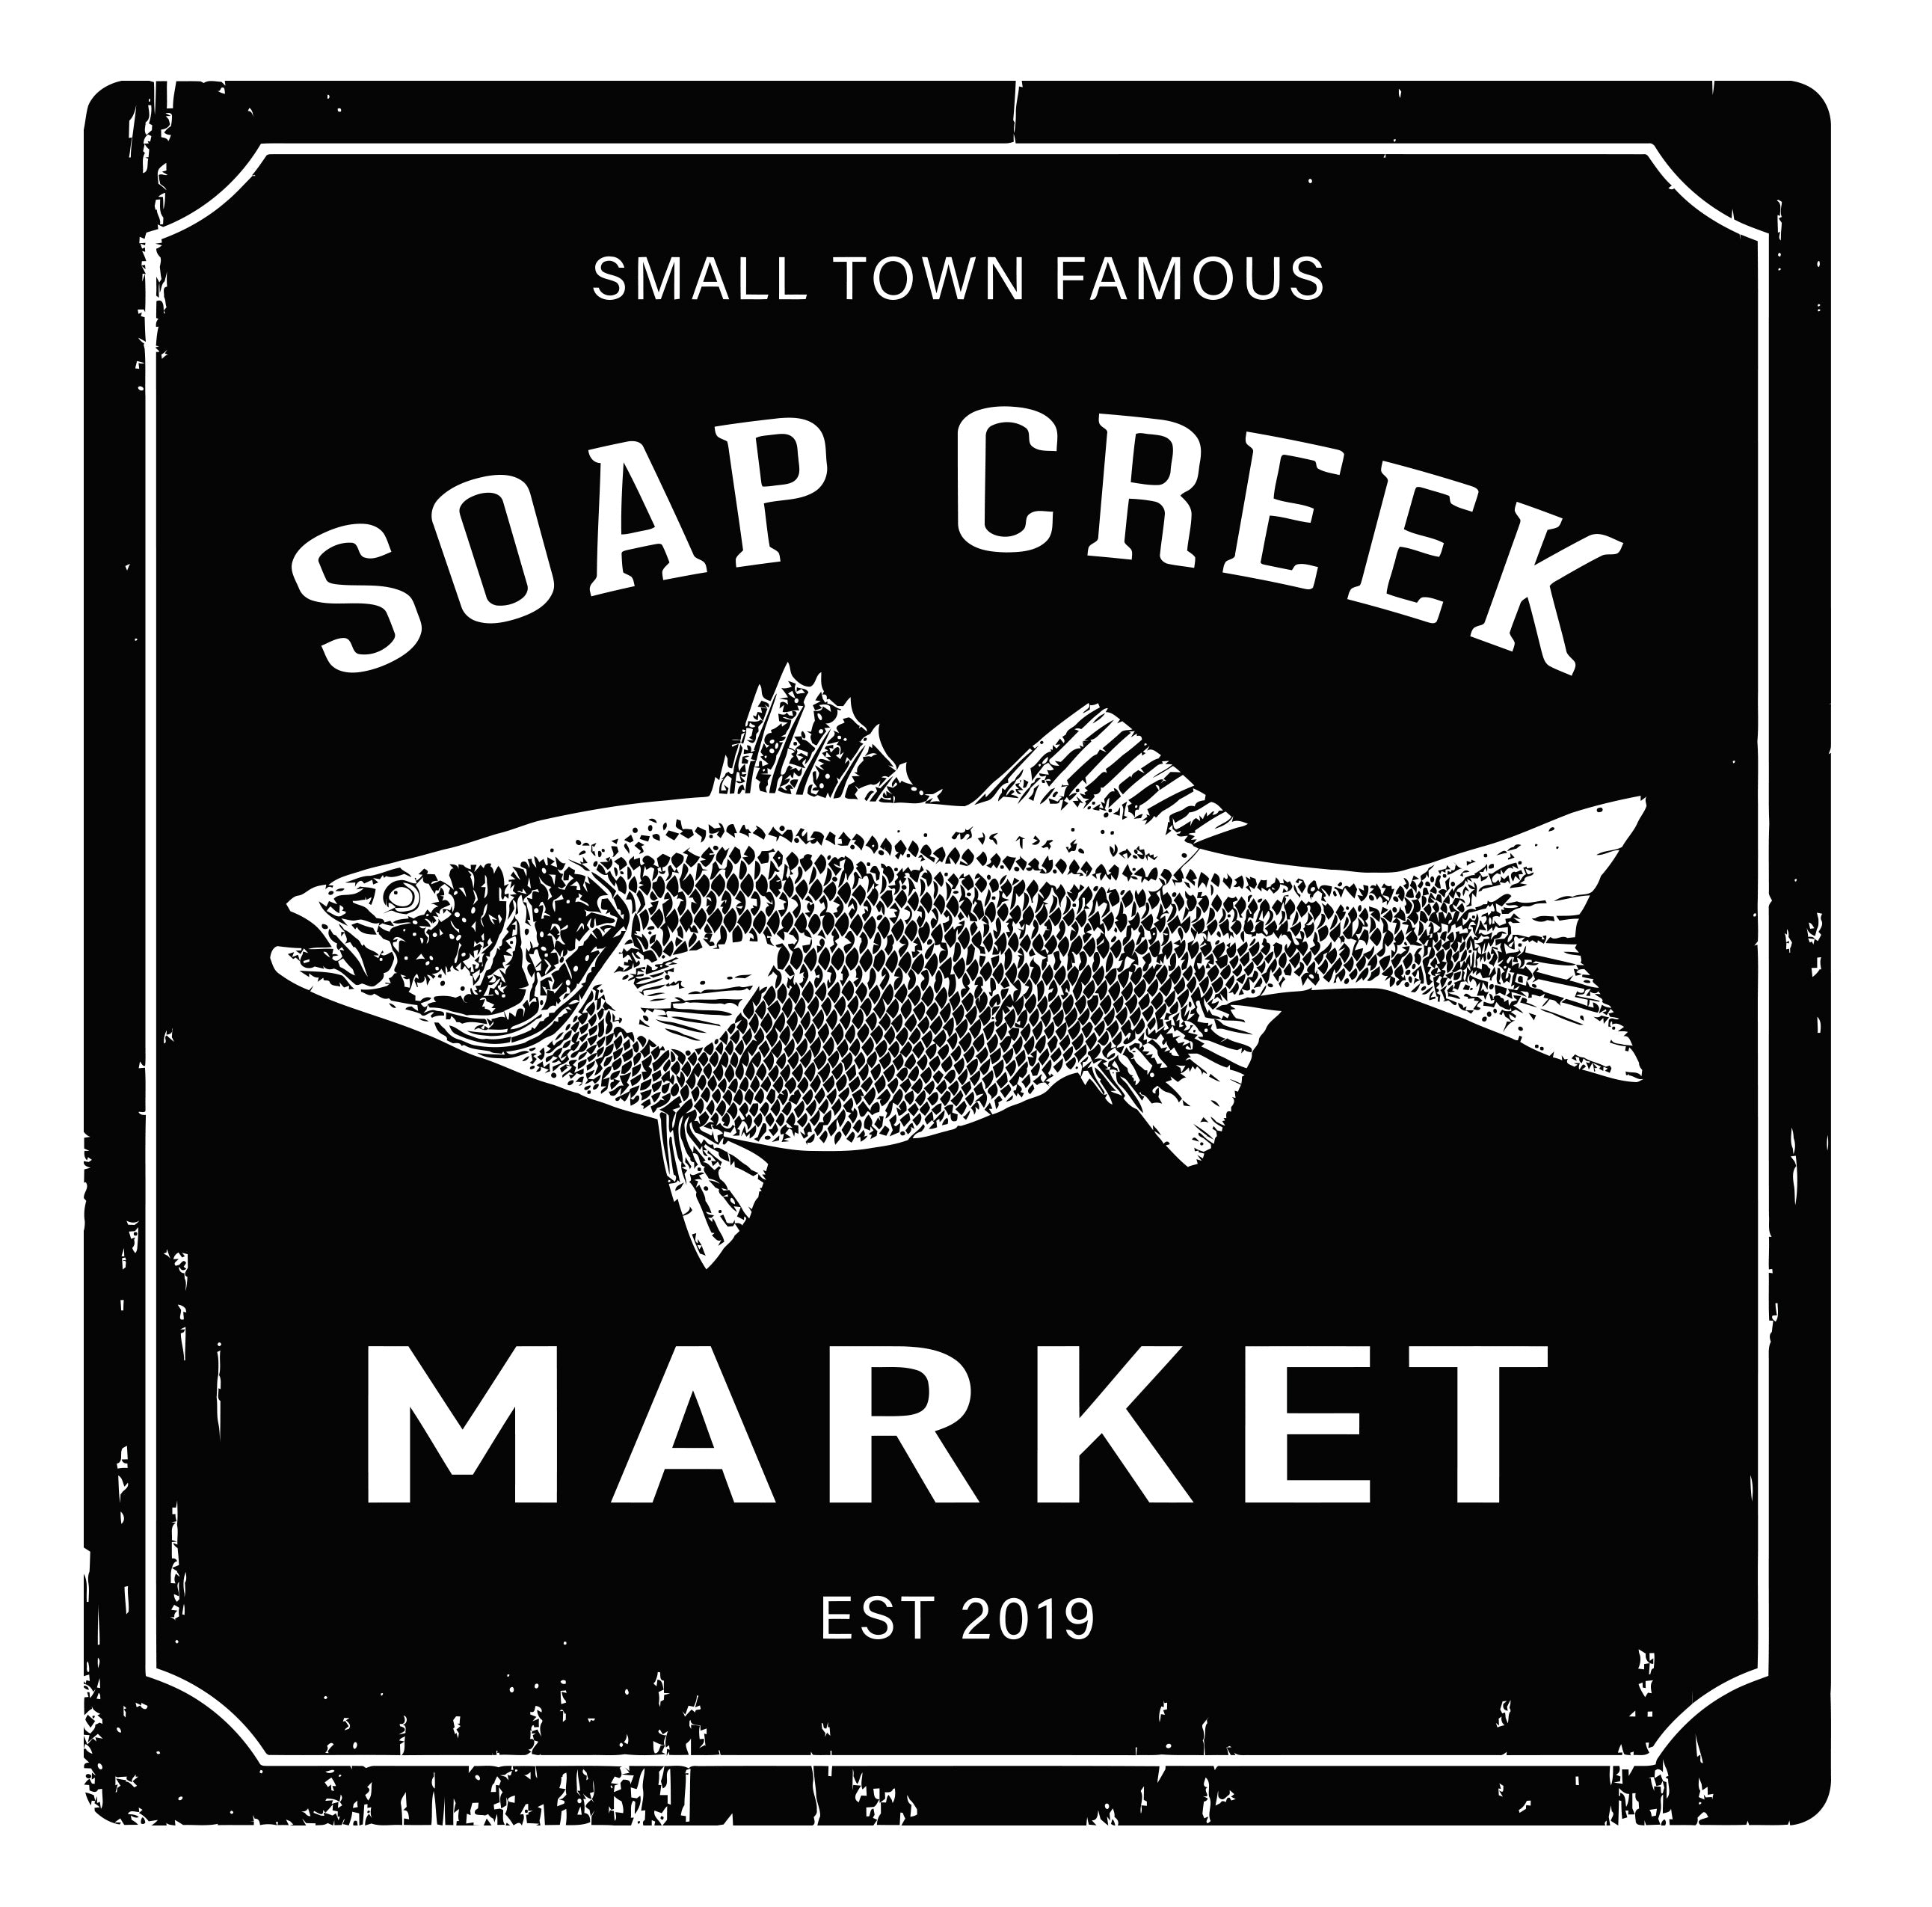 Soap Creek Market Logo